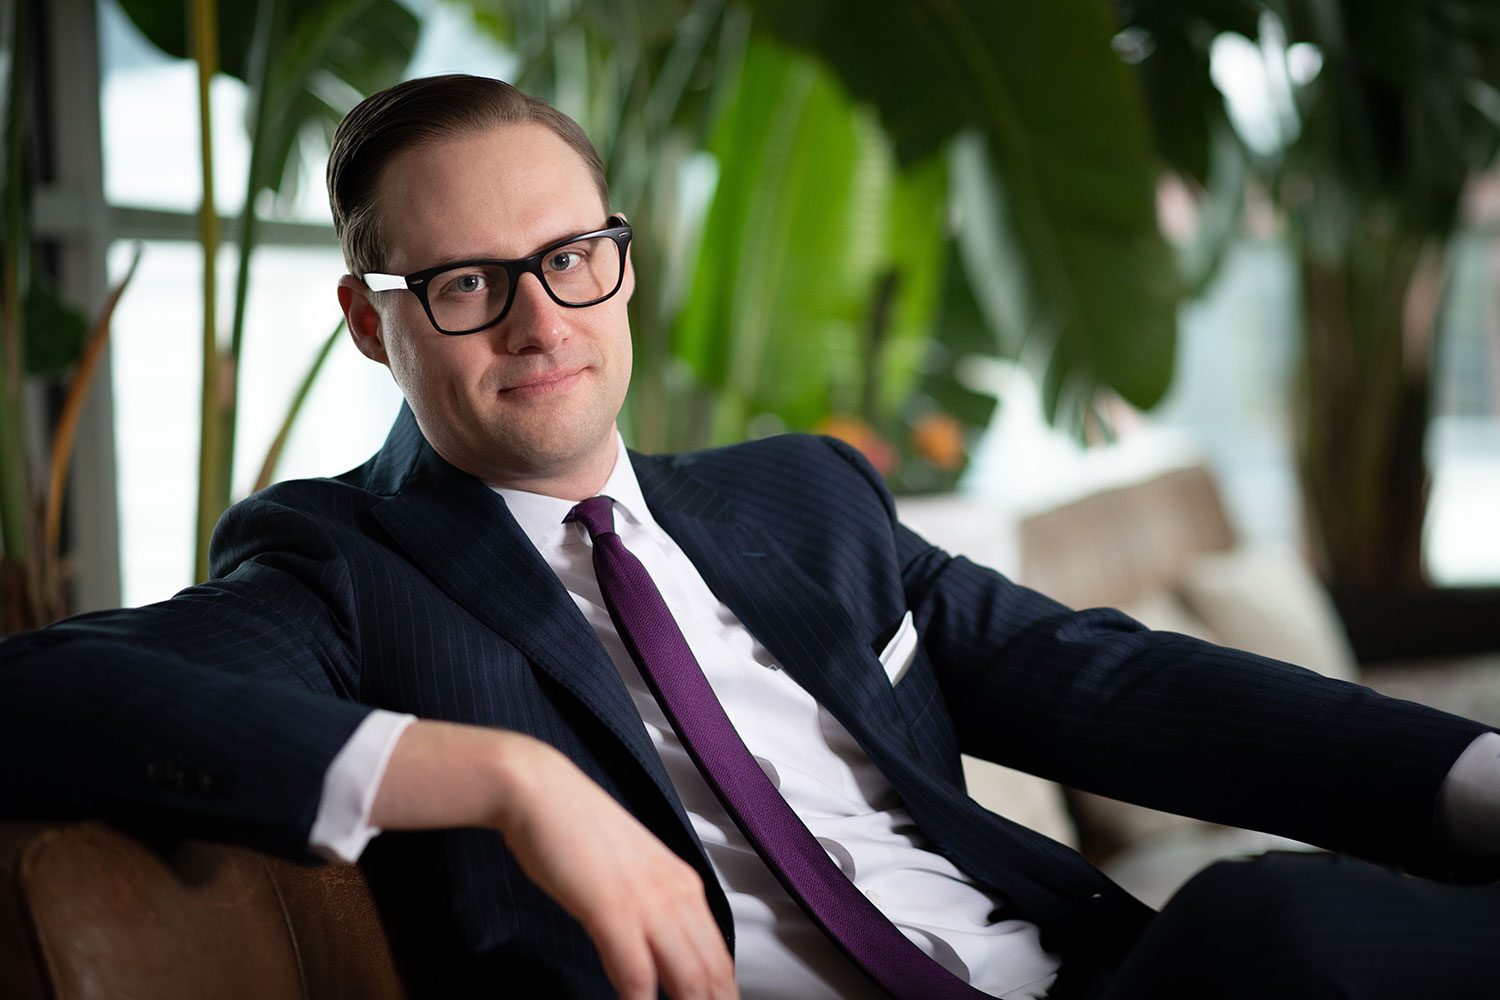 Toronto's top family law firm, Hartman Law, founded by Jeffrey Hartman